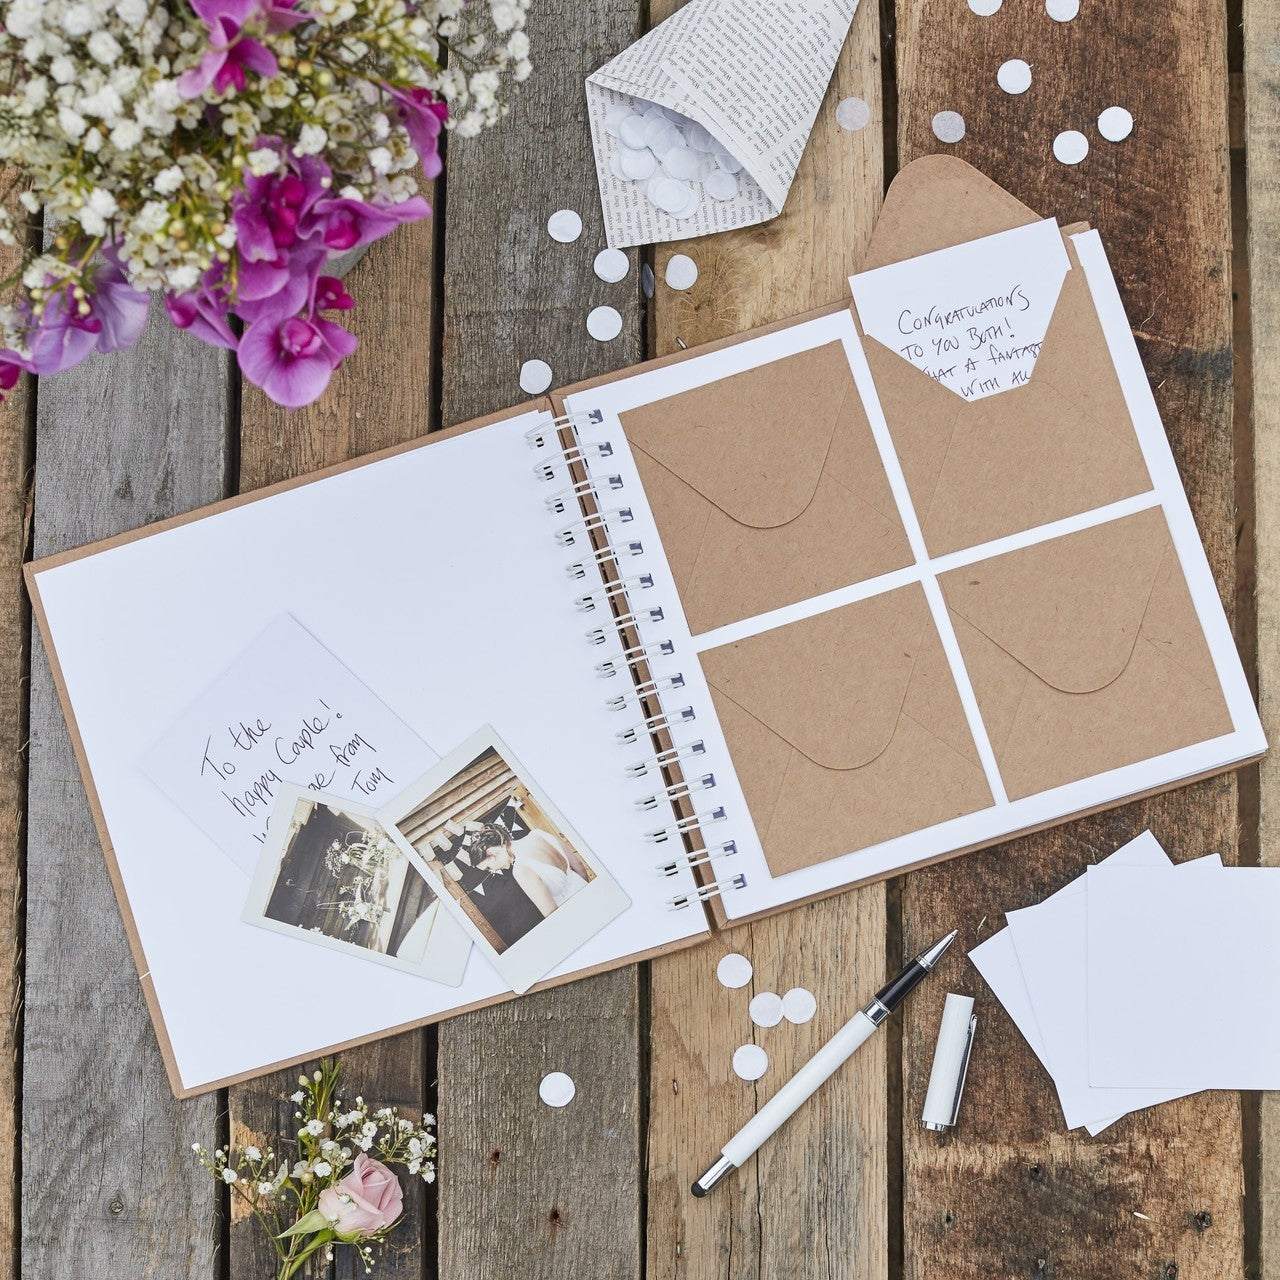 Unique Guestbook idea, mini envelope and note cards